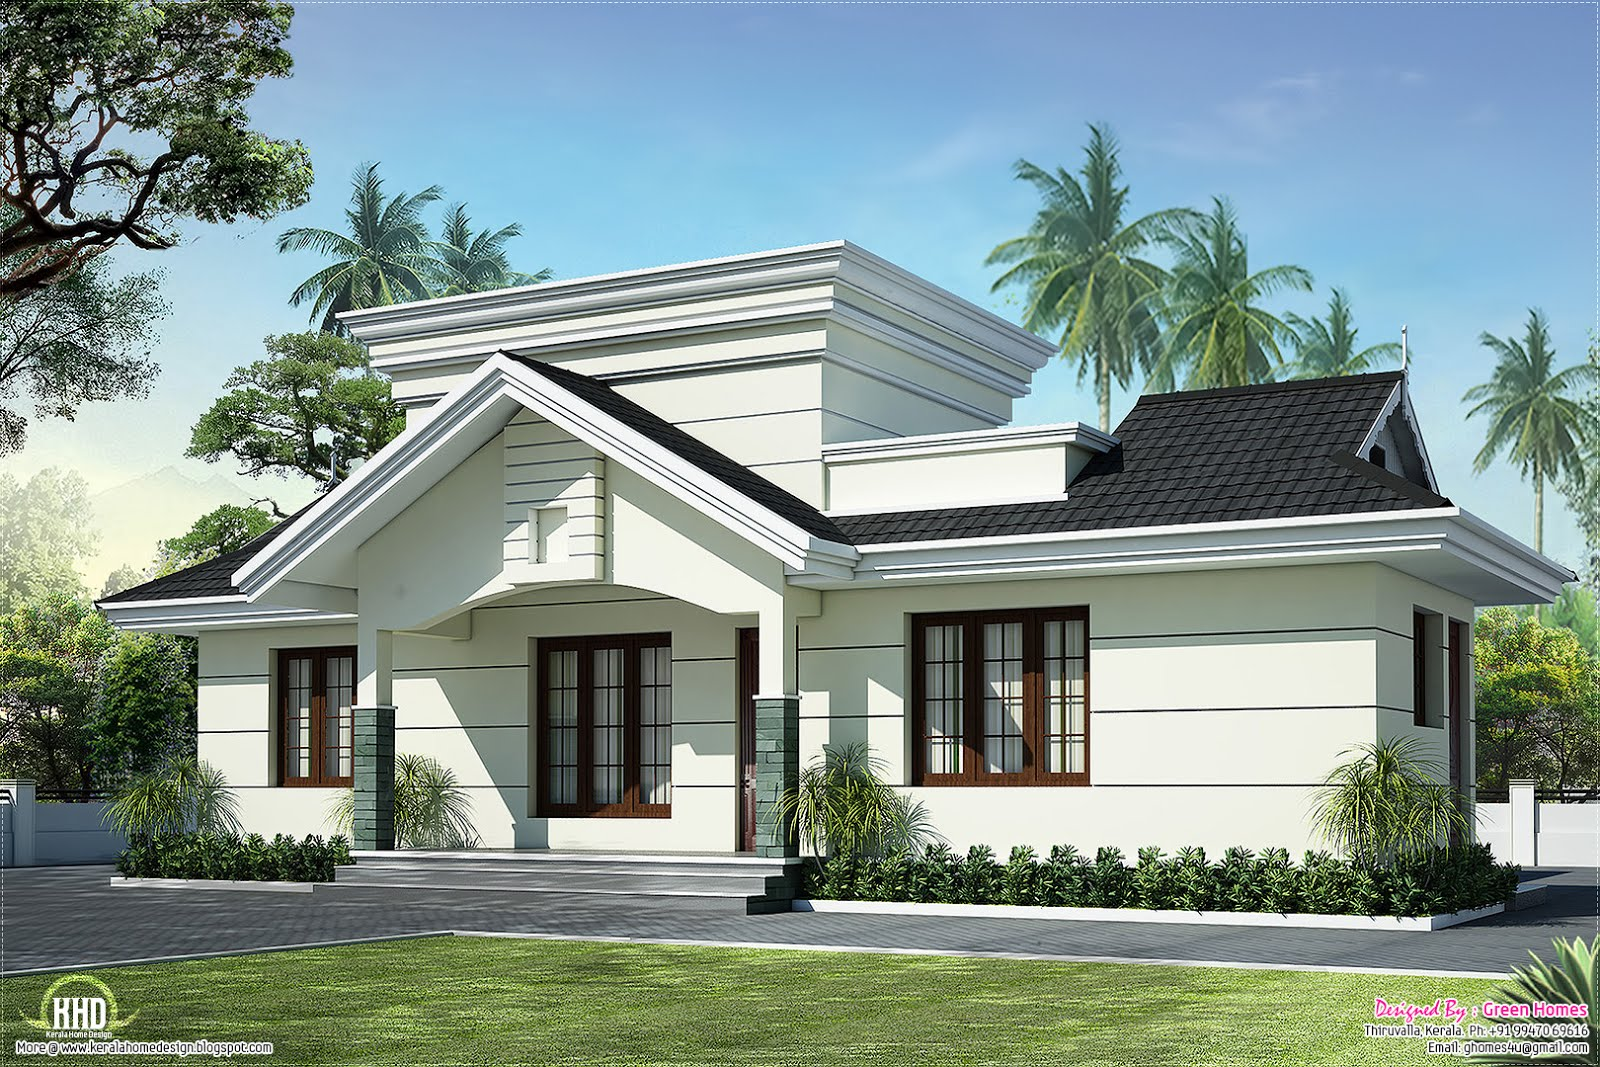 ... yards 2 bedroom budget house design by green homes thiruvalla kerala